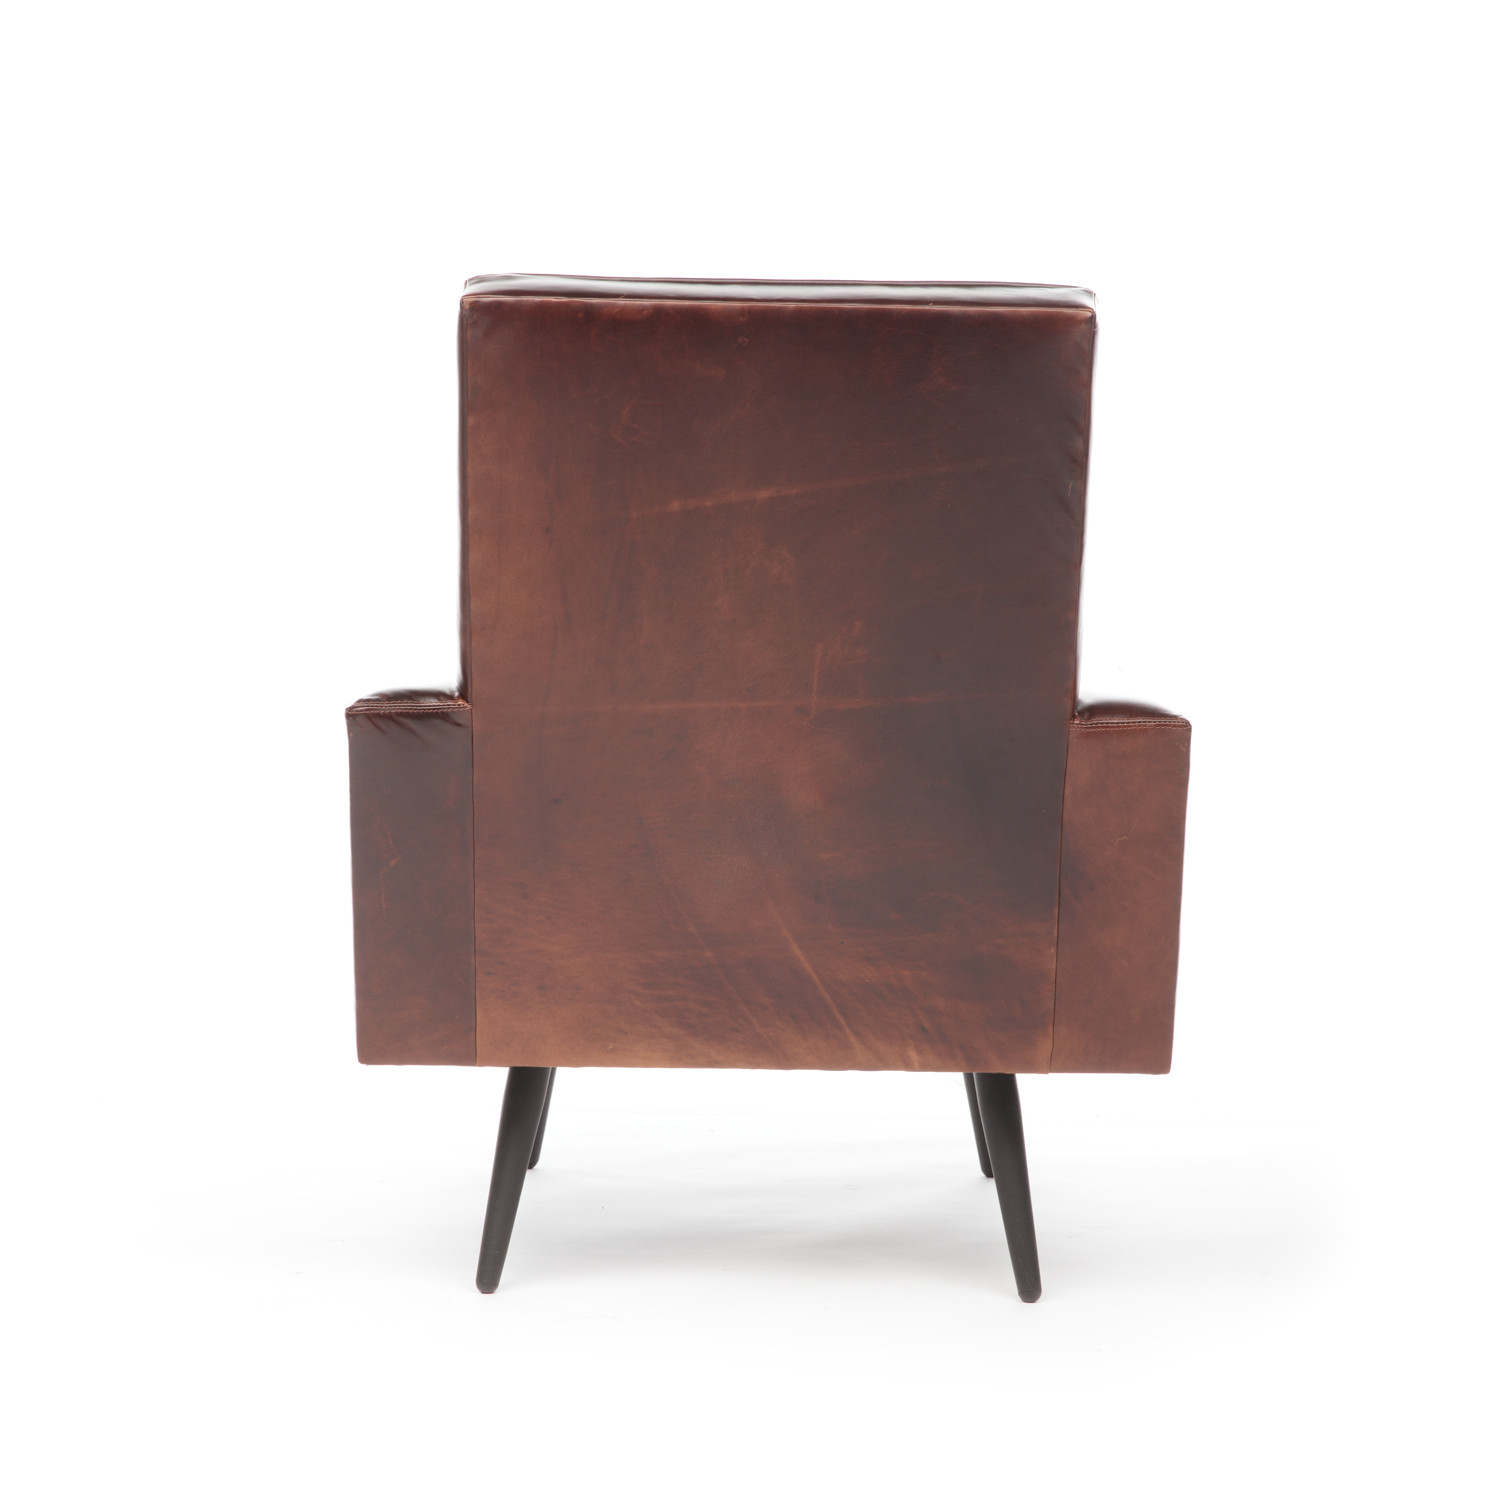 Orbit Chair by Urbia Imports